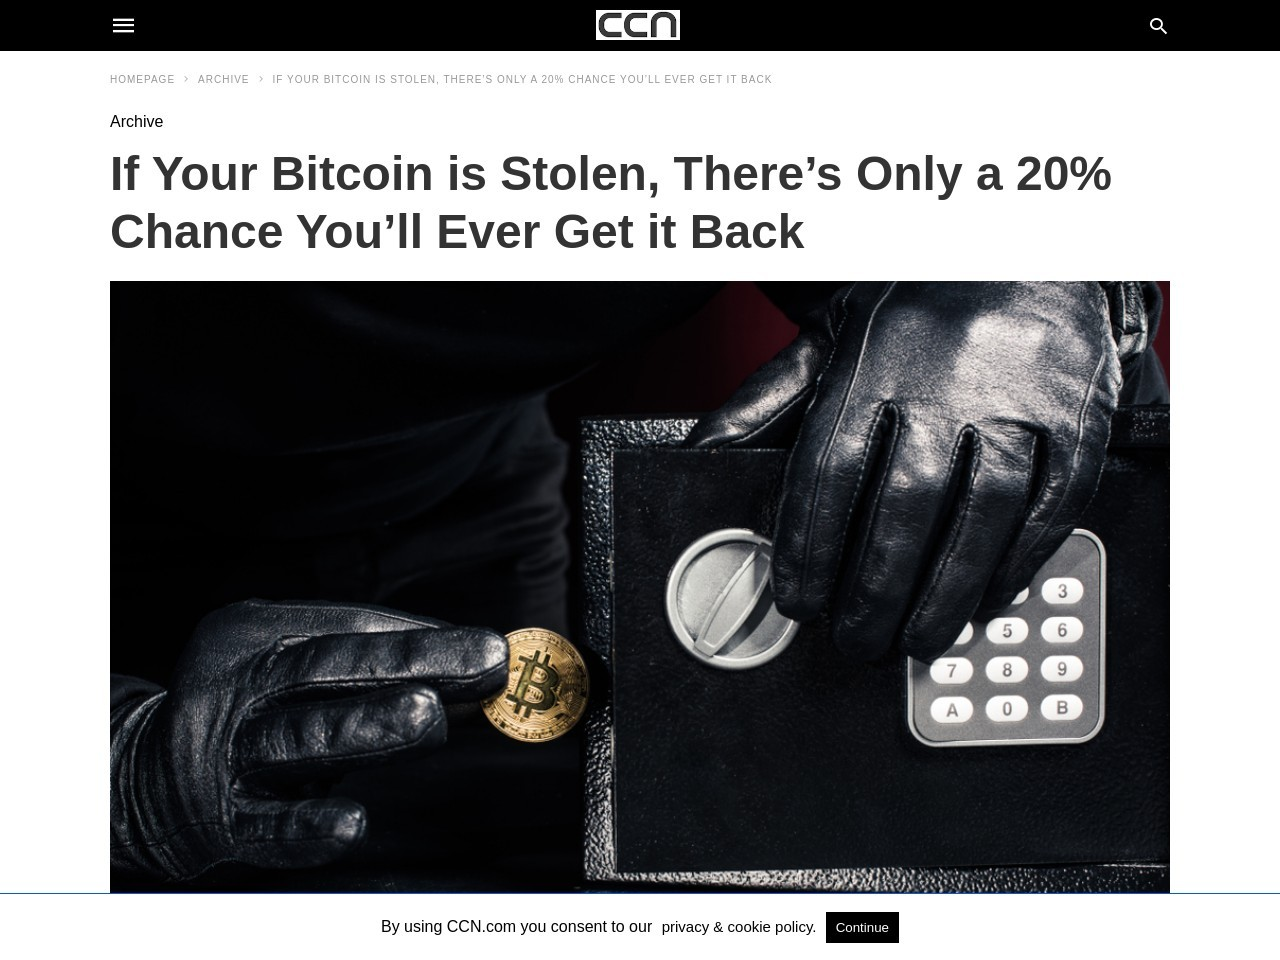 If Your Bitcoin is Stolen, There's Only a 20% Chance You'll Ever Get it Back